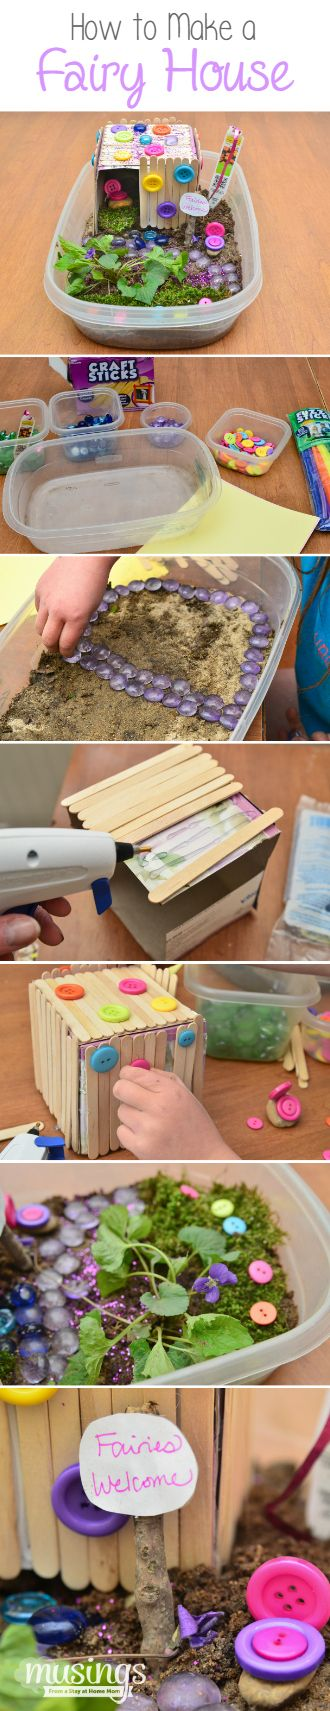 How to make a Fairy House craft for kids